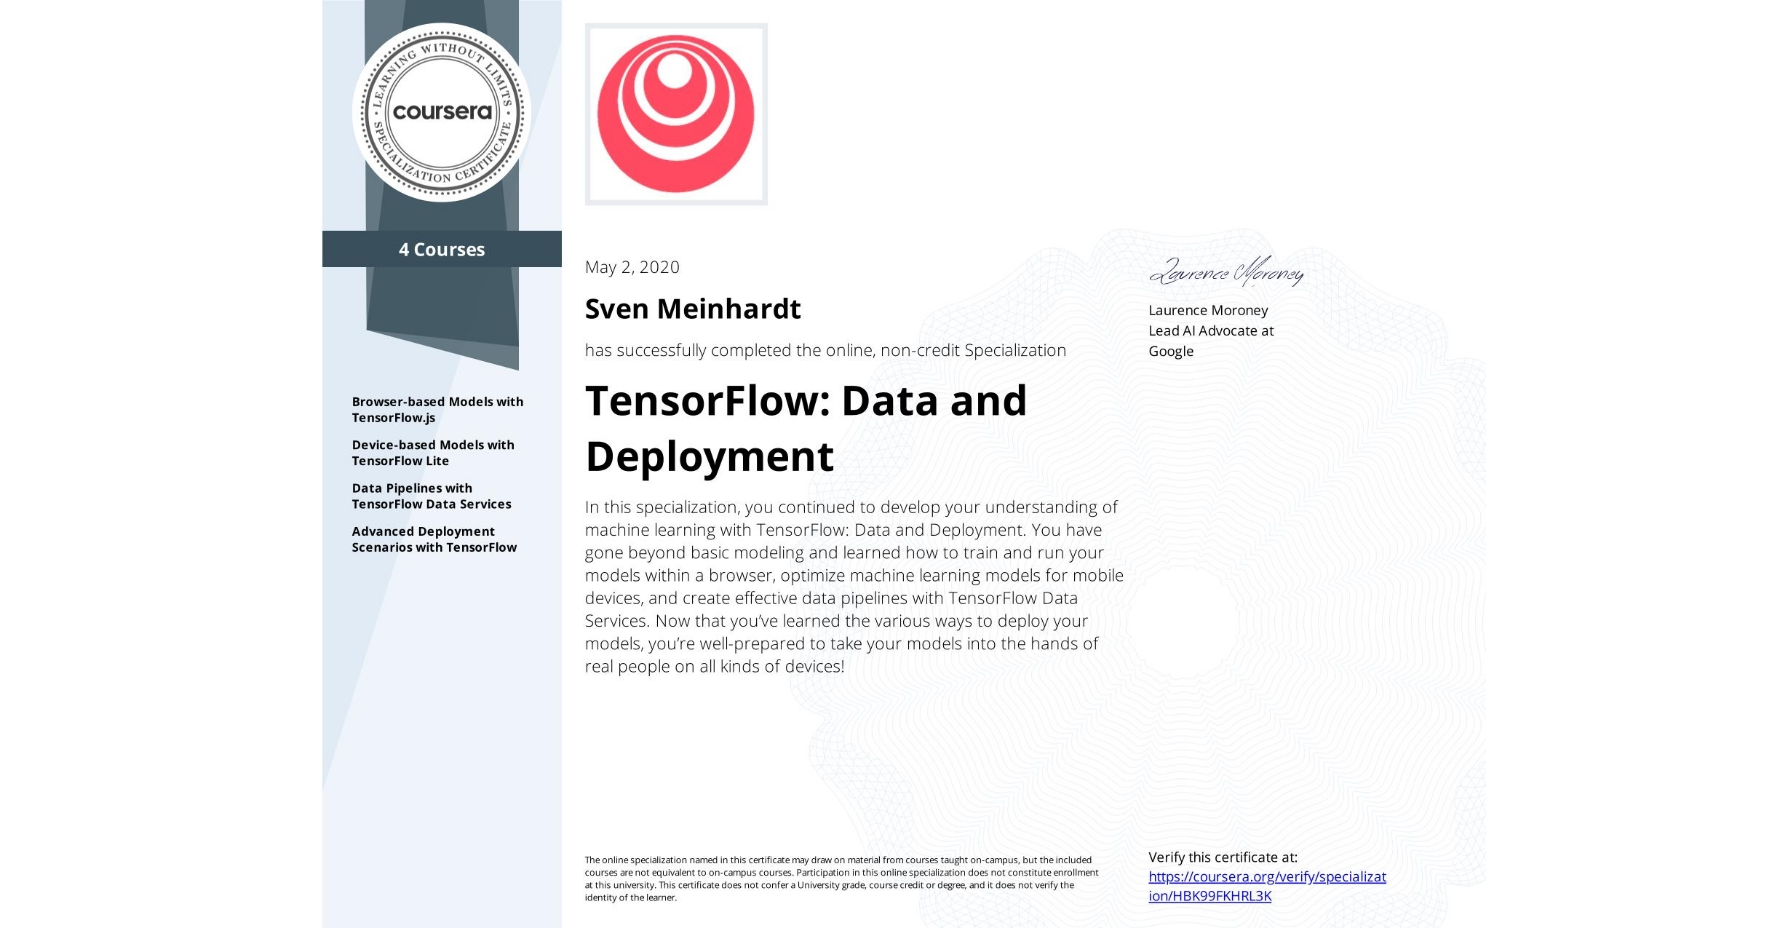 View certificate for Sven Meinhardt, TensorFlow: Data and Deployment, offered through Coursera. In this specialization, you continued to develop your understanding of machine learning with TensorFlow: Data and Deployment. You have gone beyond basic modeling and learned how to train and run your models within a browser, optimize machine learning models for mobile devices, and create effective data pipelines with TensorFlow Data Services. Now that you've learned the various ways to deploy your models, you're well-prepared to take your models into the hands of real people on all kinds of devices!